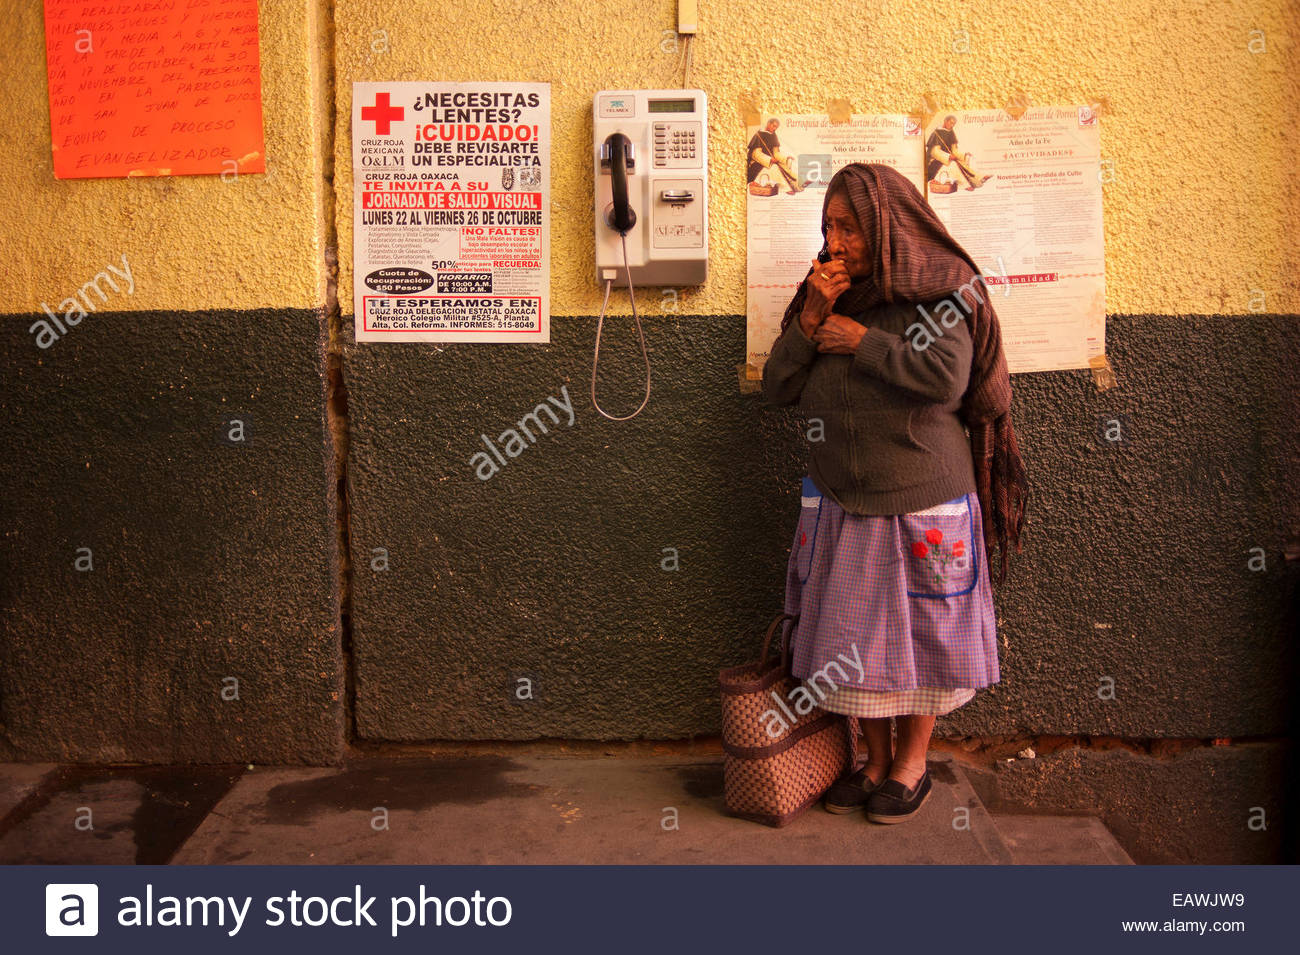 An elderly woman stands near a payphone in Oaxaca, Mexico. - Stock Image